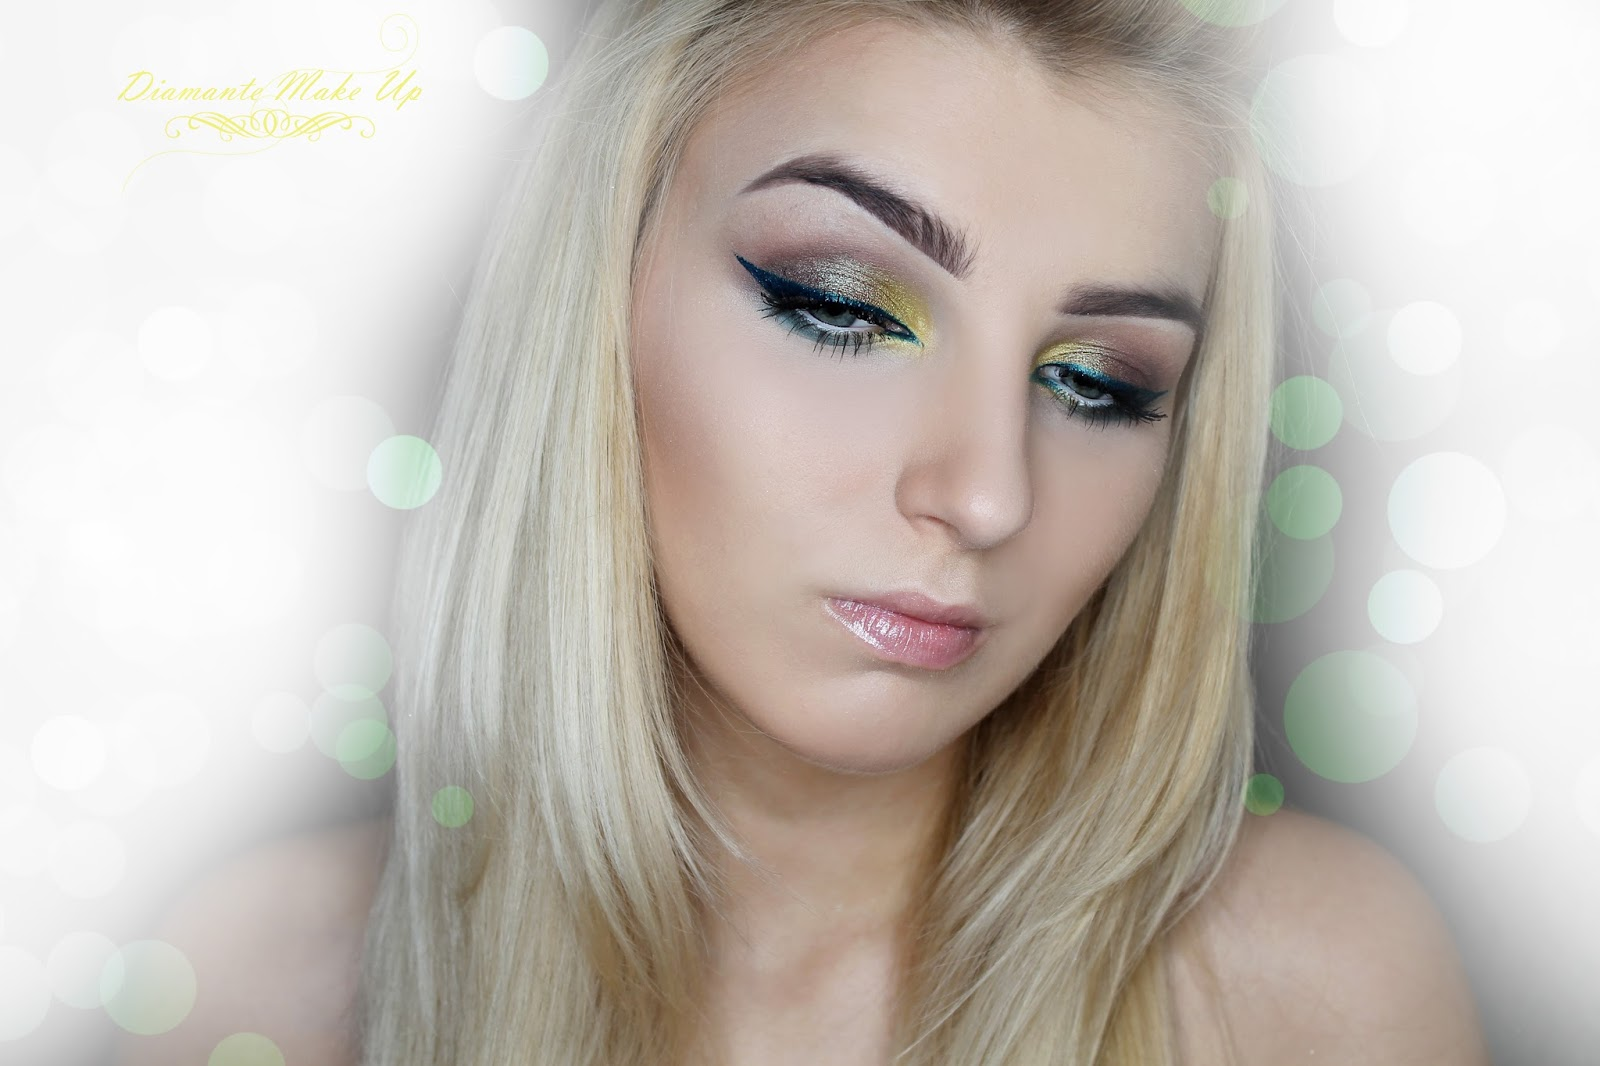 Todays Look - Hawaii Makeup